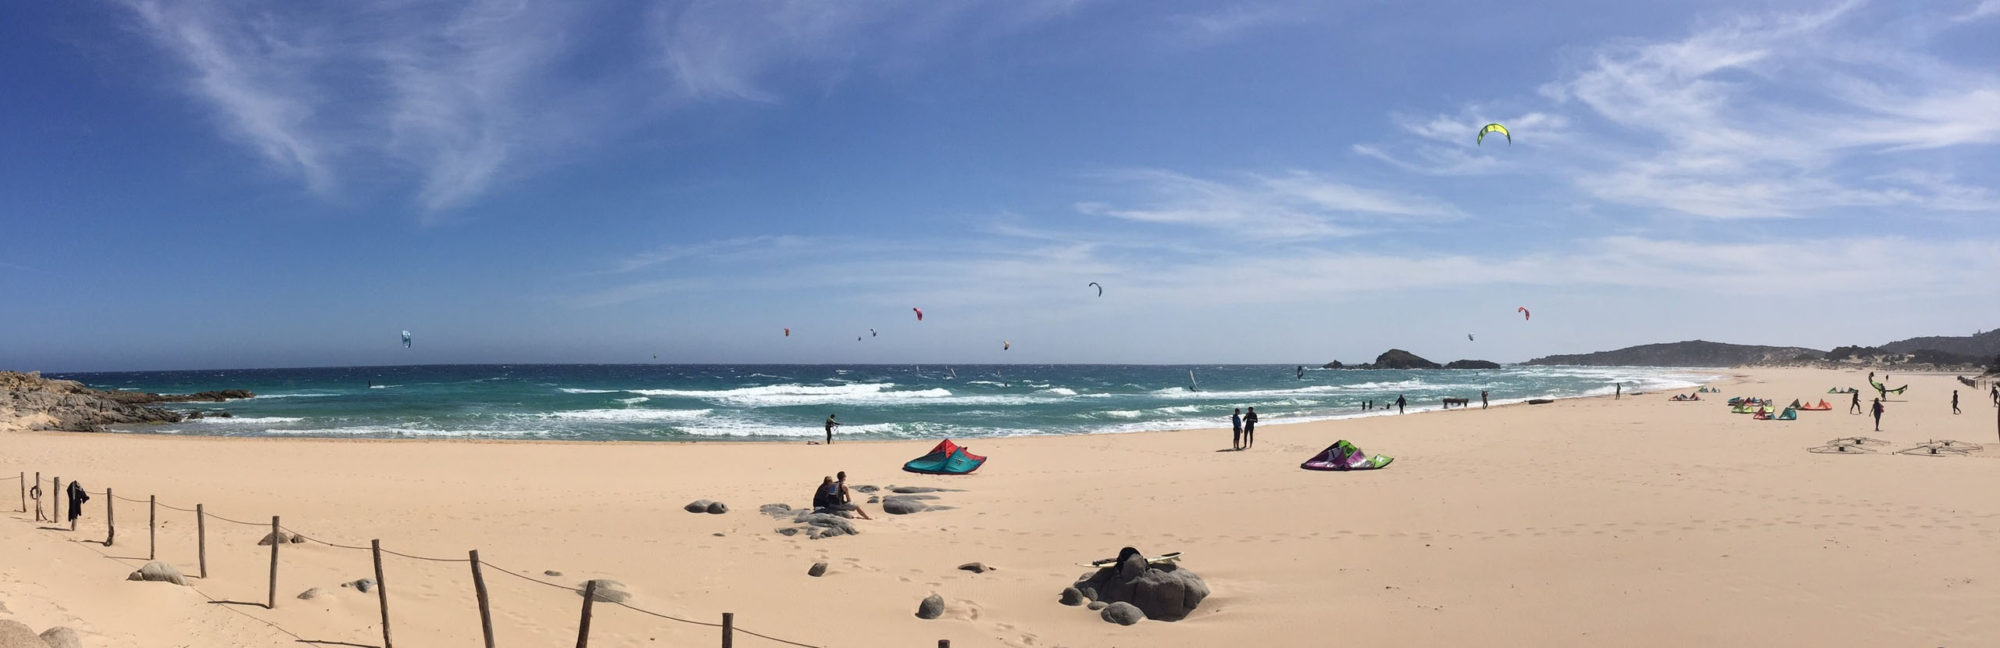 Kitesurfing Chia, Sardinia. Chia is a Wave Kite Spot in the Southern Sardinia, suitable just for advanced riders